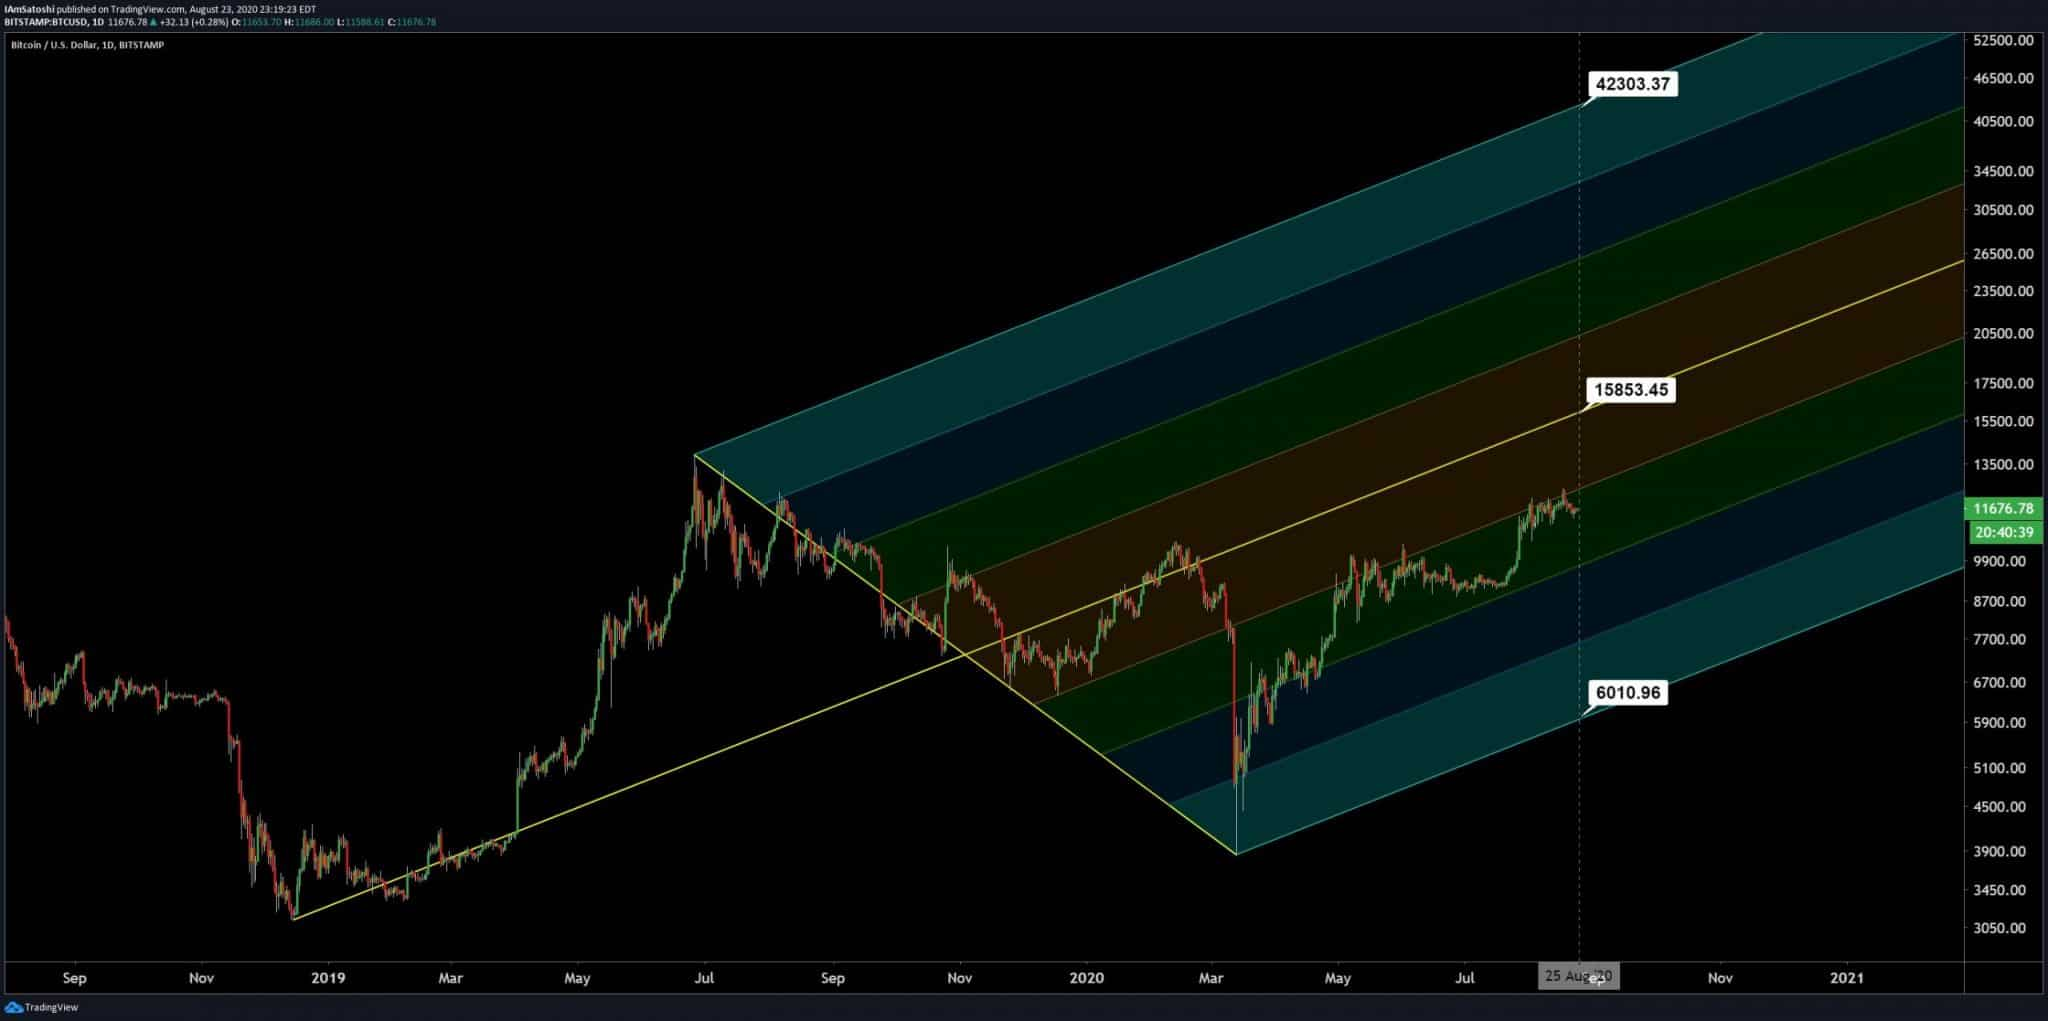 Bitcoin is approaching the Pitchfork median line in its running uptrend. Source TradingView.com Josh Olszewicz scaled - Bitcoin Predicted to Hit $15,800 in Medium-Term